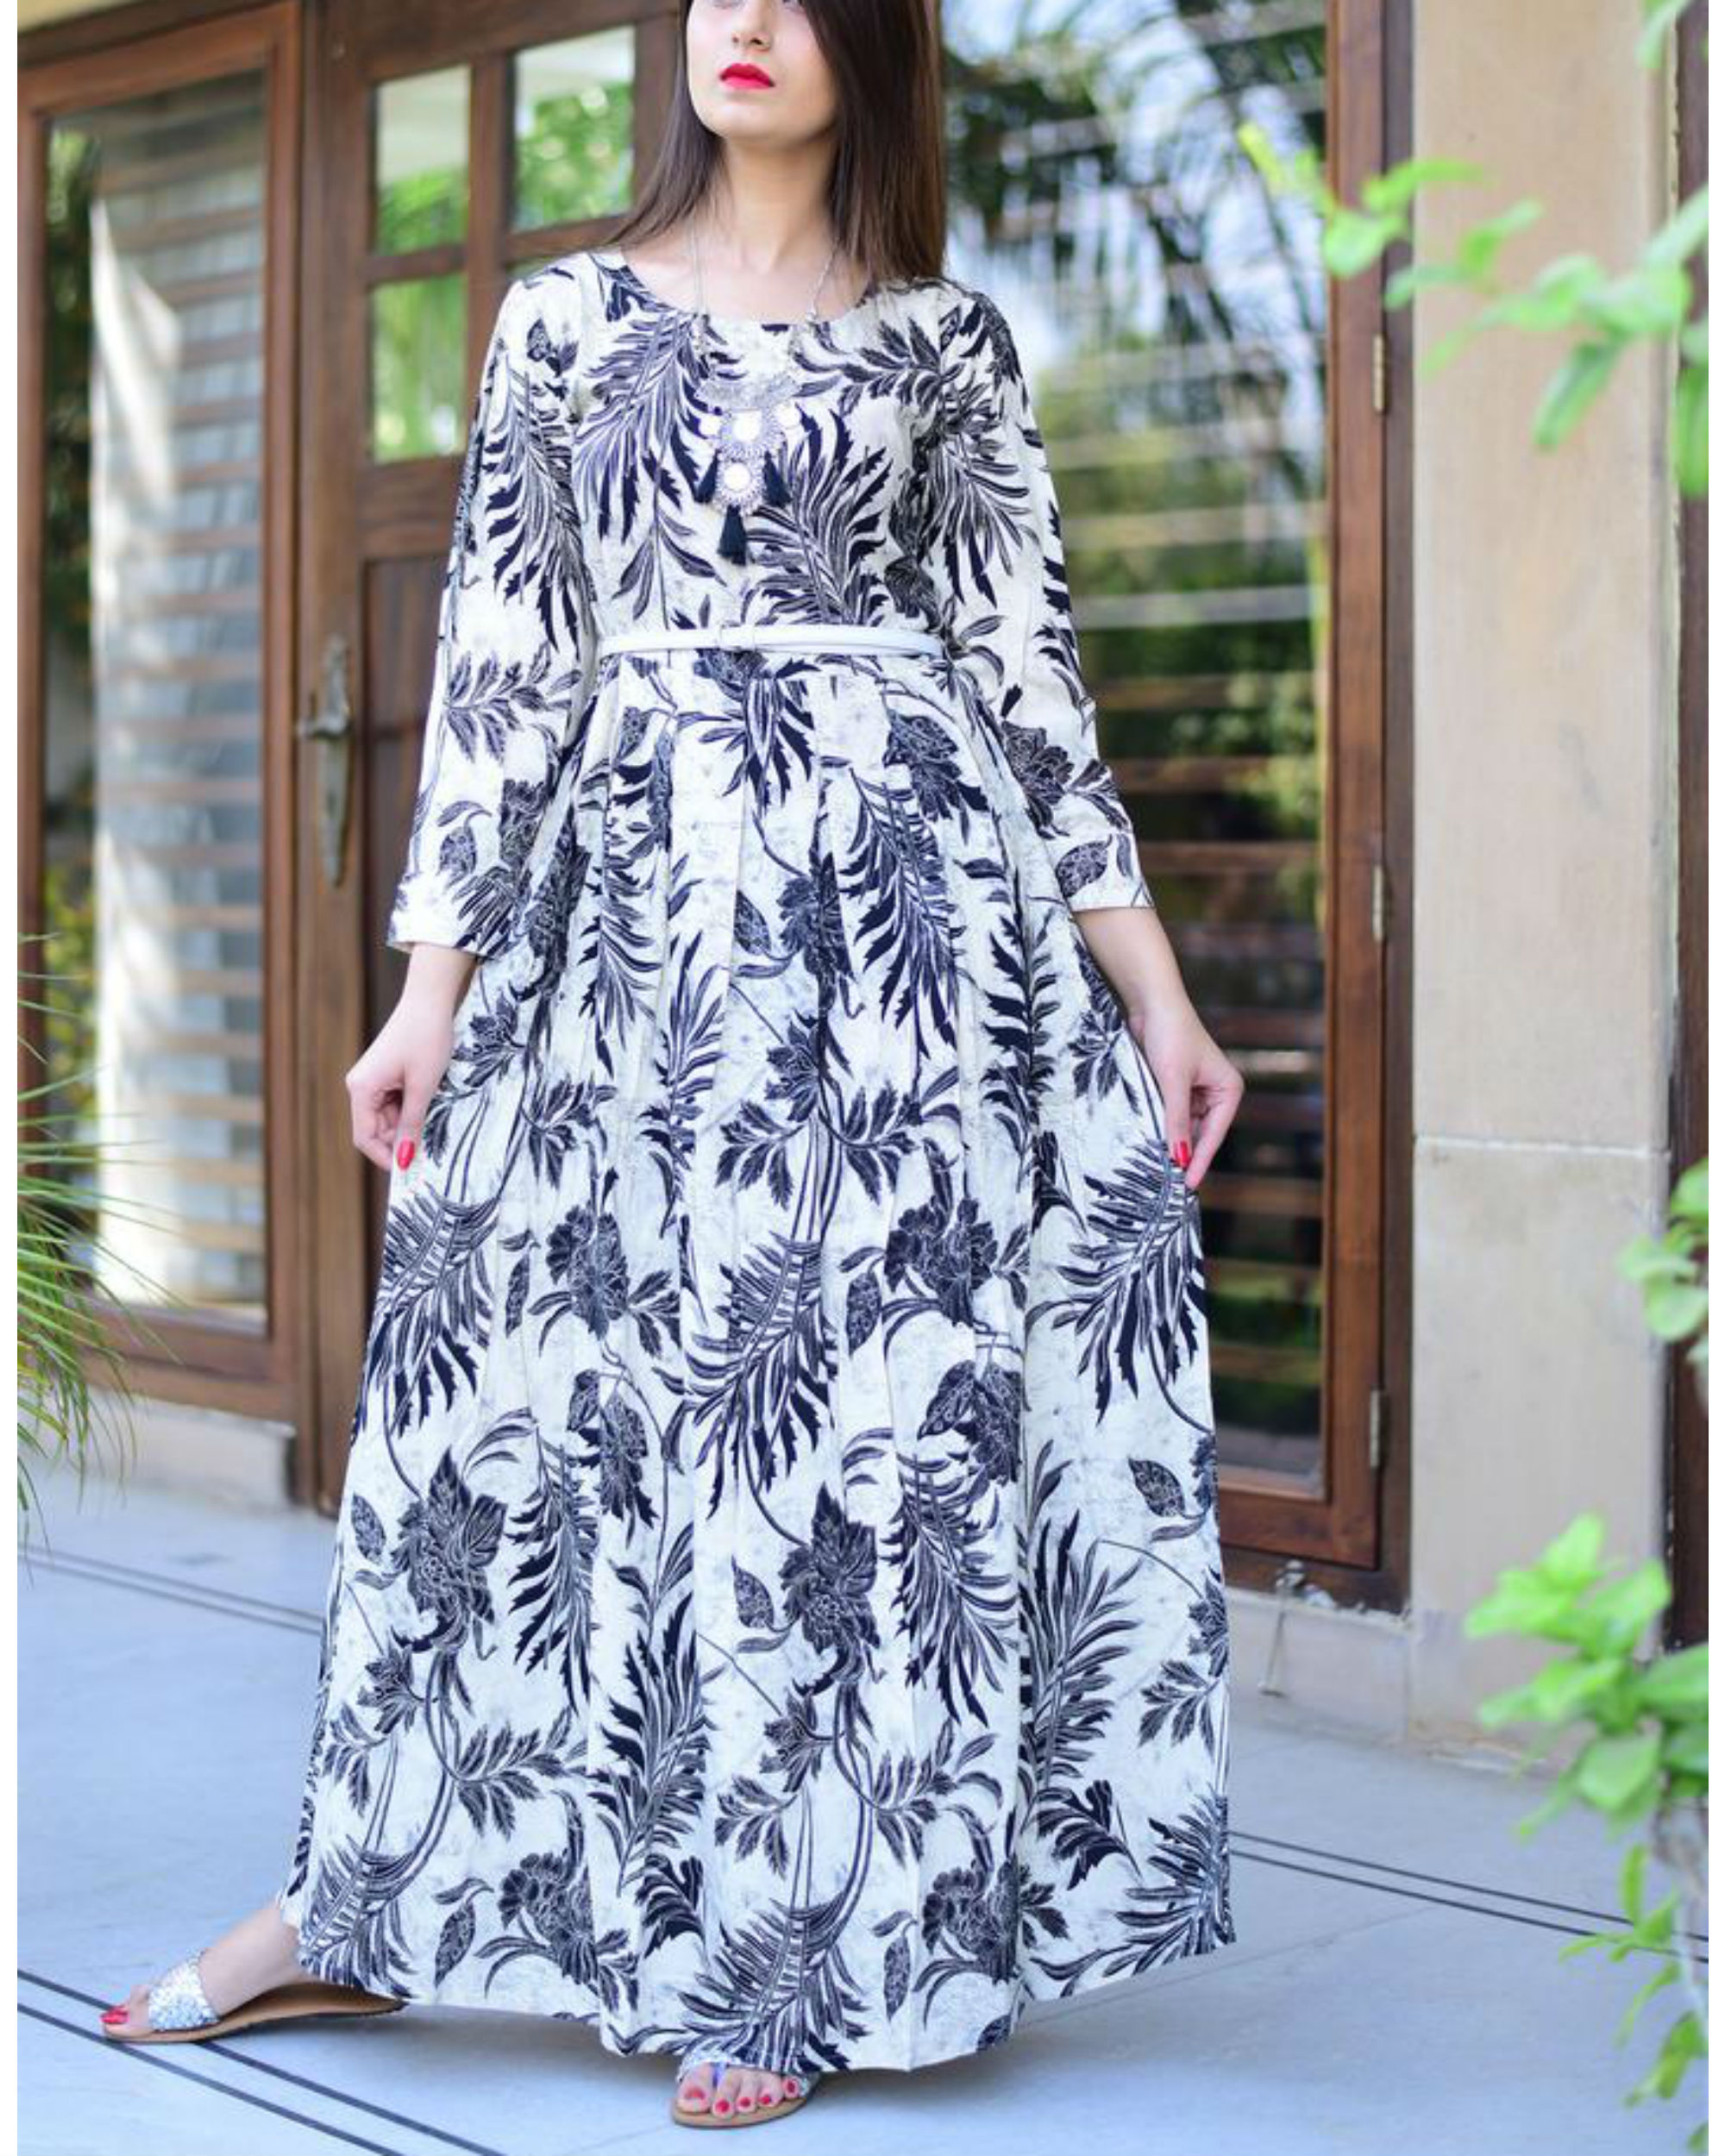 Black and white floral dress by thread and button the secret label black and white floral dress izmirmasajfo